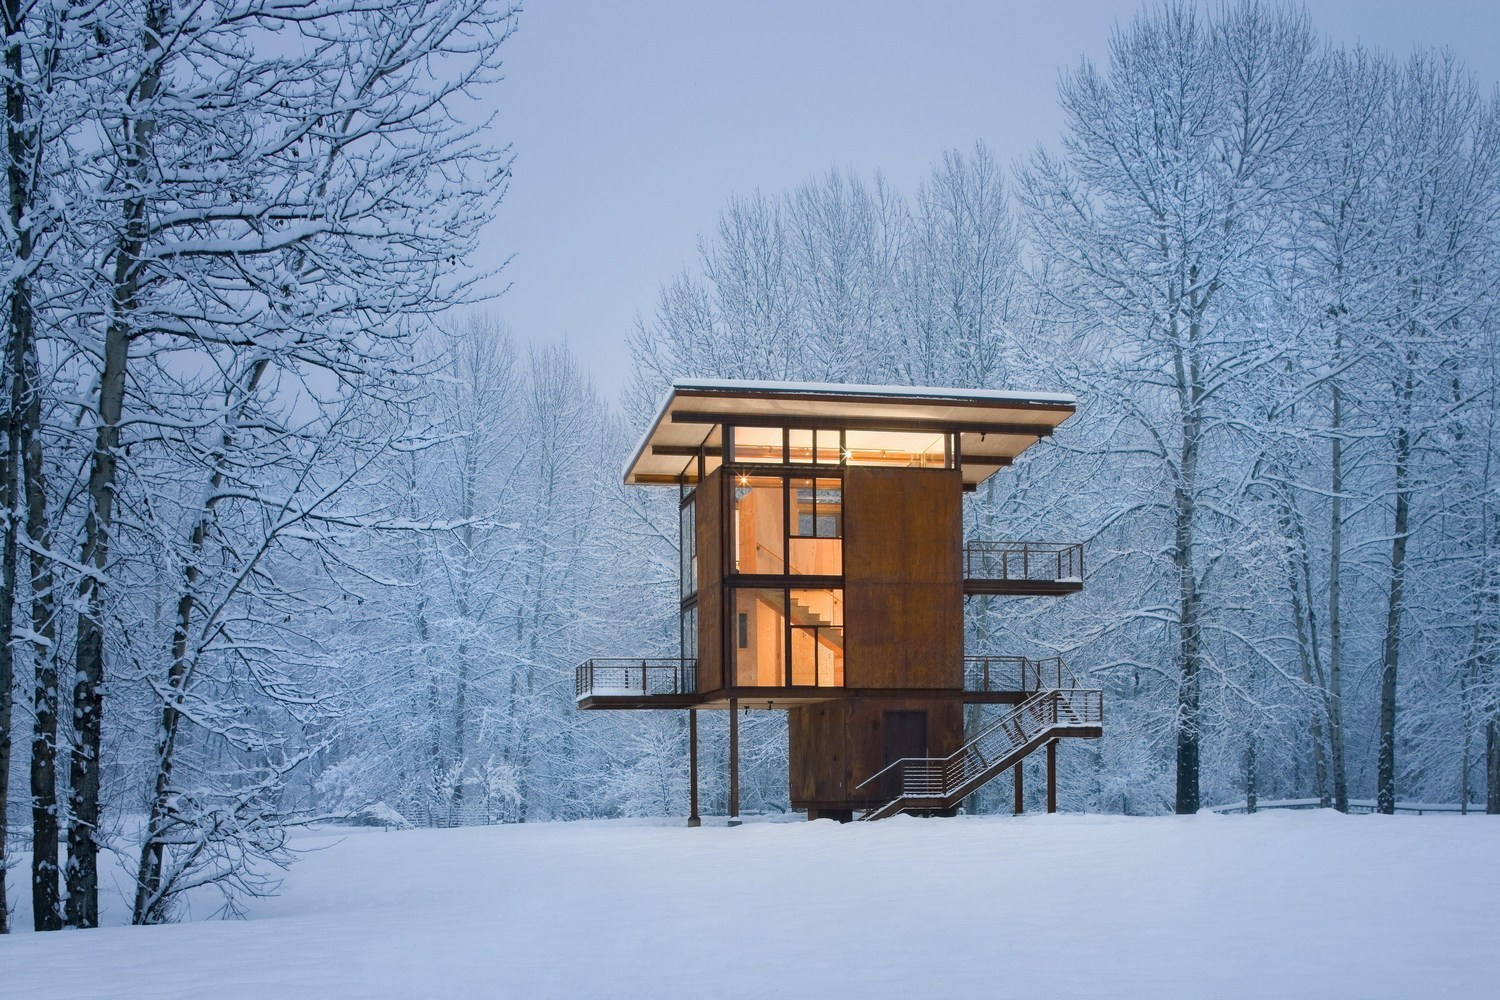 10 Wonderful Winter Cabins: The Best Photos of the Week